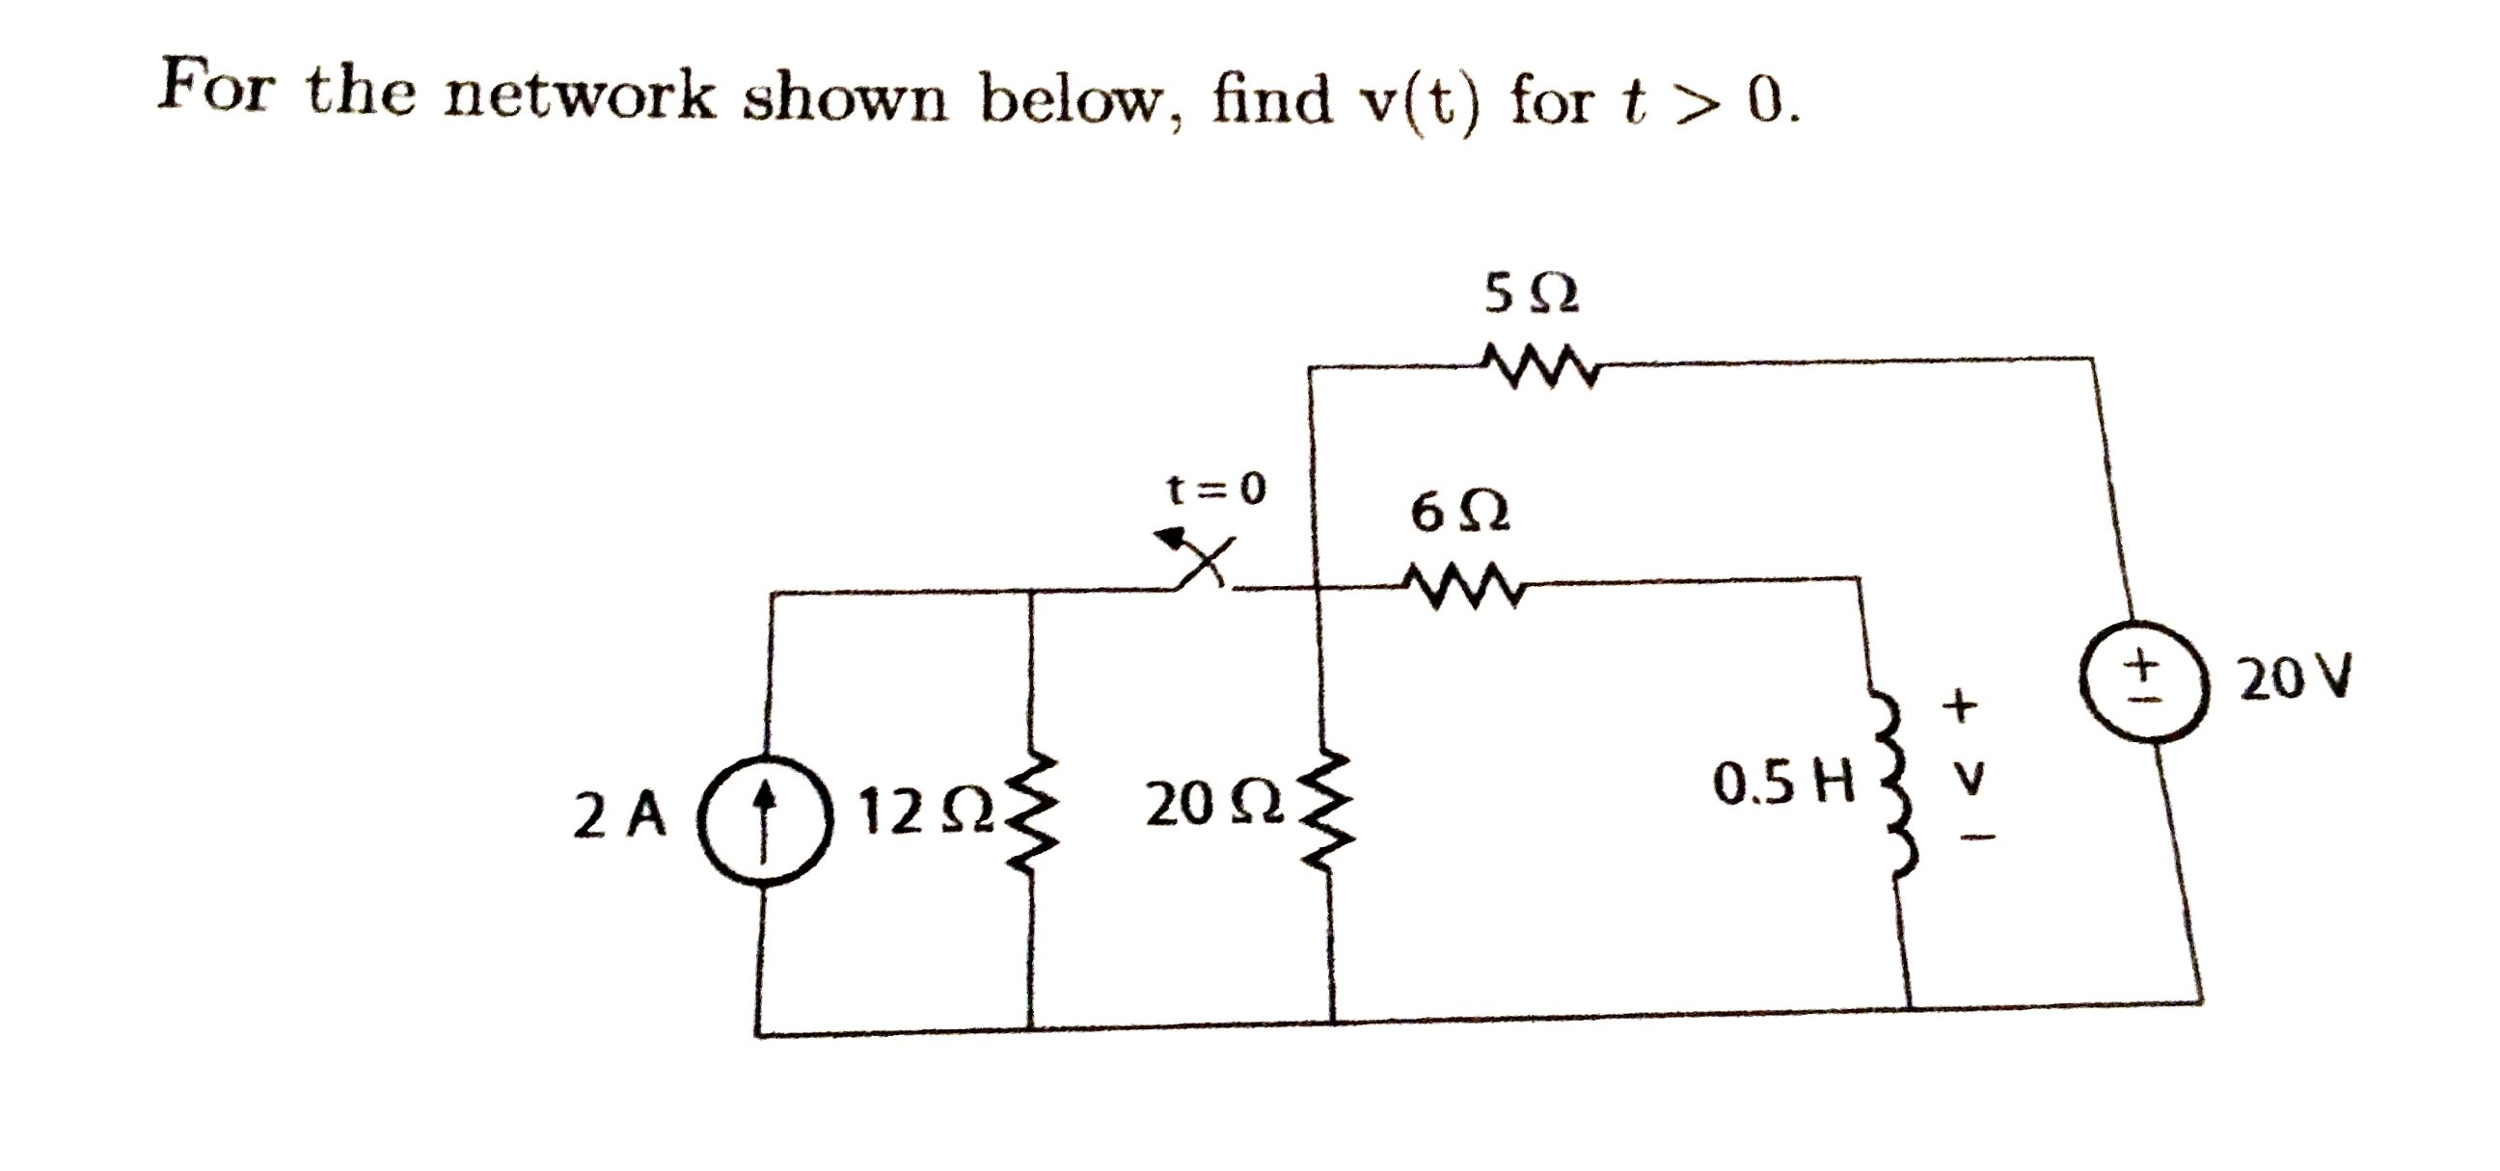 For the network shown below, find v(t) for t > 0.